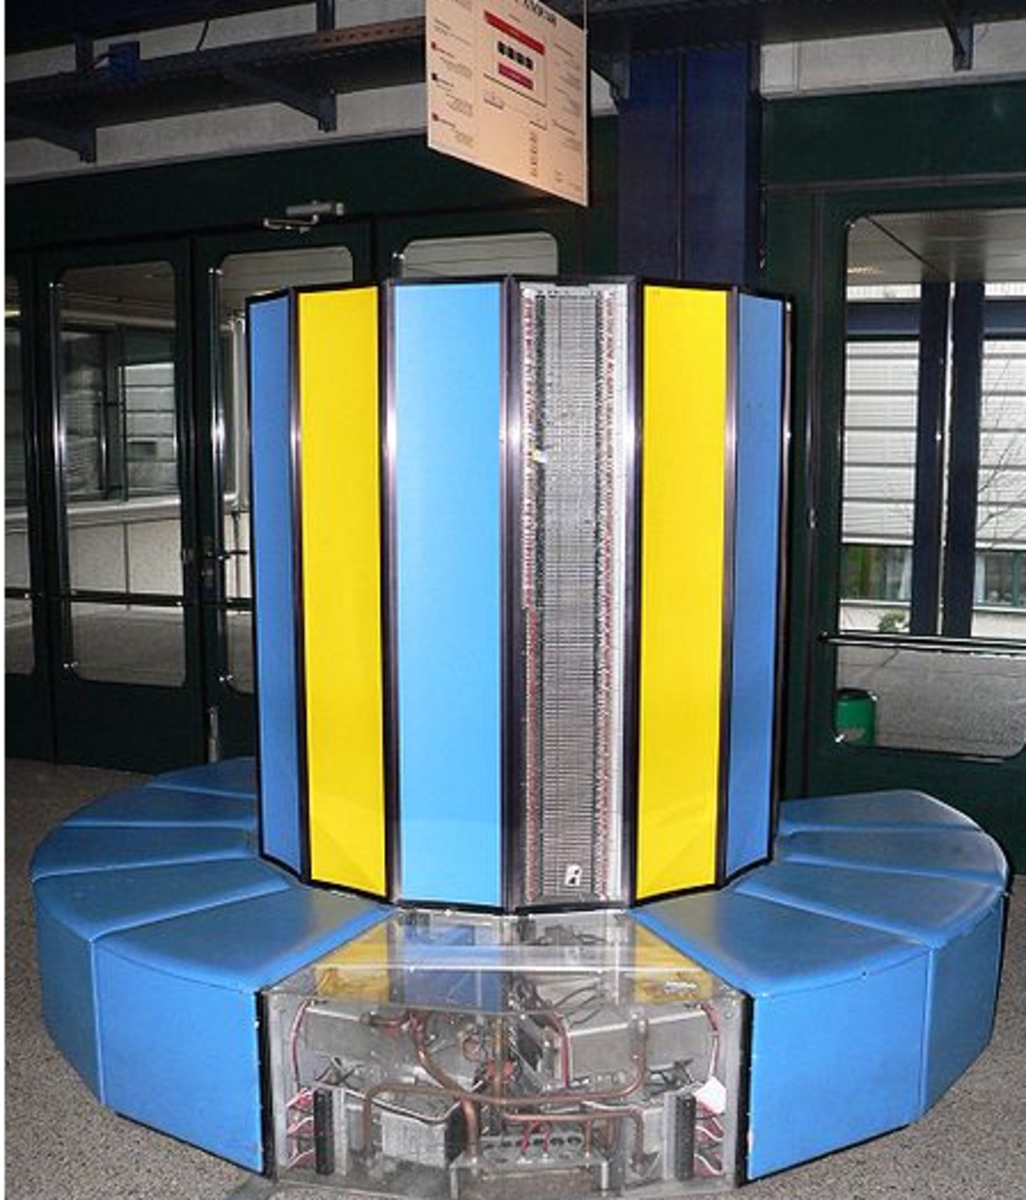 The Cray-1 supercomputer of 1975